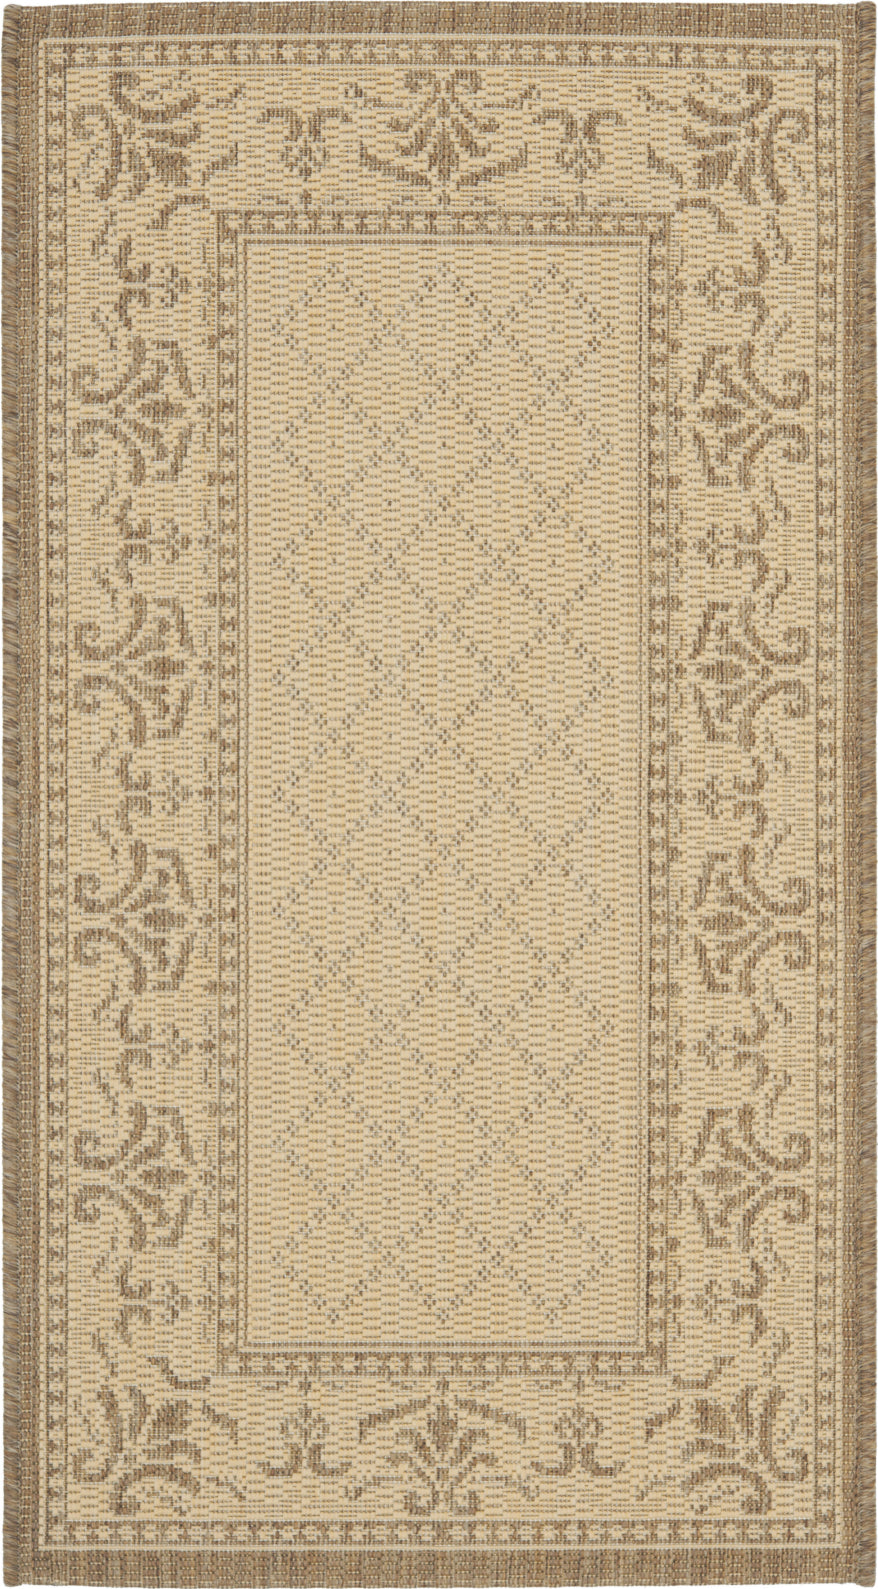 Safavieh Courtyard CY0901 Natural/Brown Area Rug main image